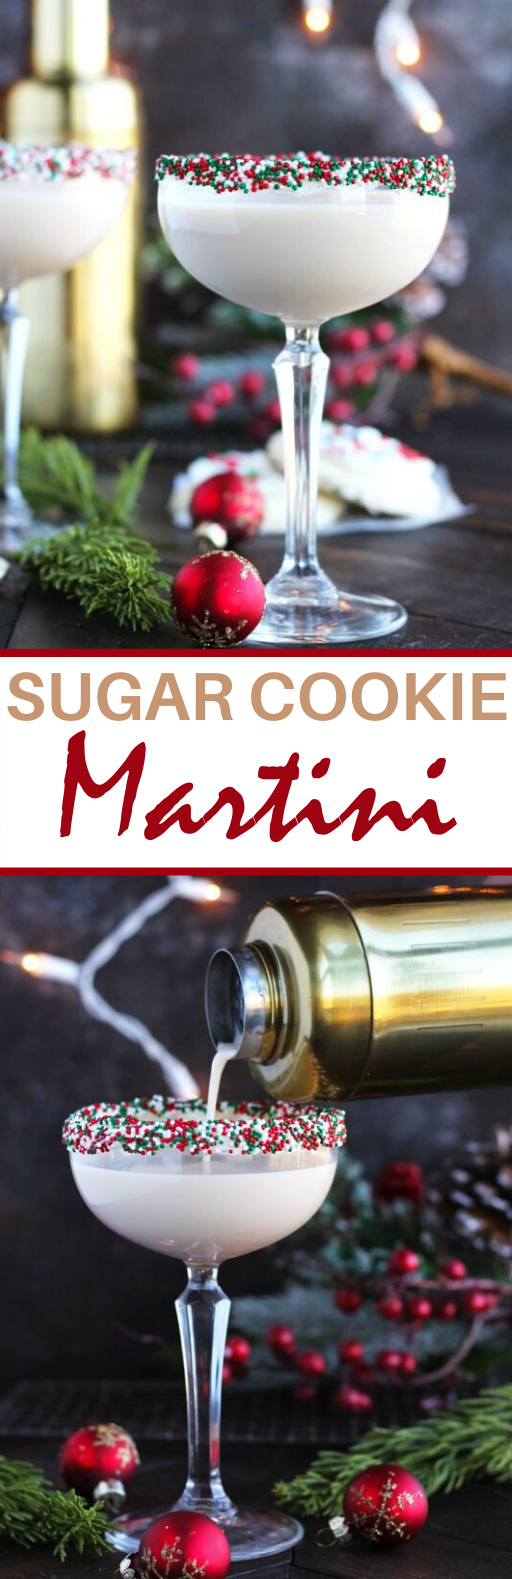 Sugar Cookie Martini #drinks #alcohol #christmas #cocktails #beverages